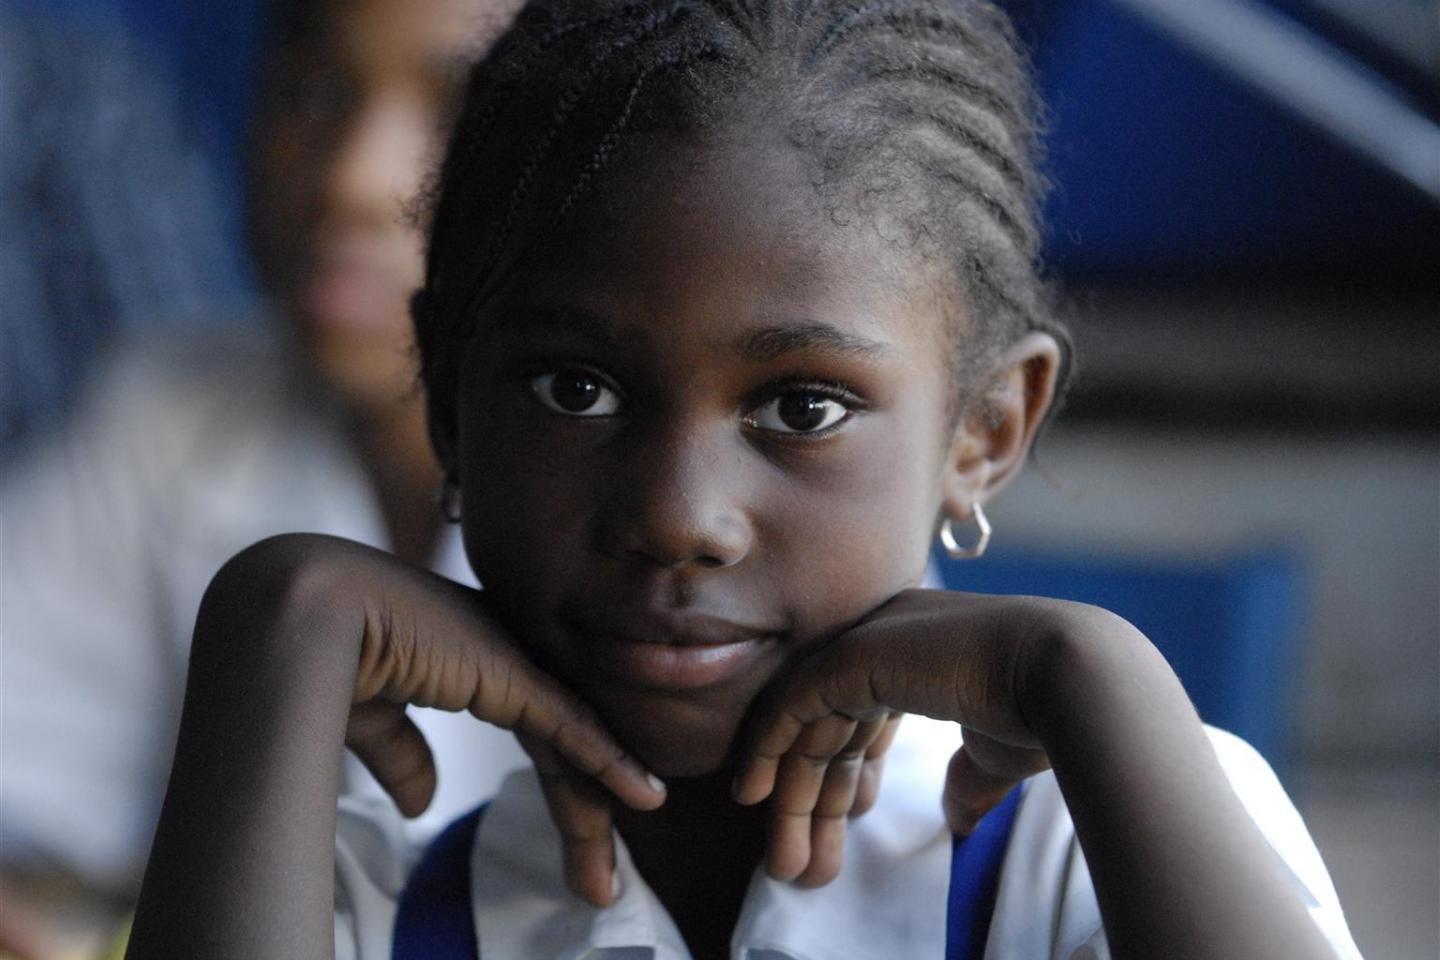 A schoolgirl listens to a discussion on non-violence during the visit of UNICEF Advocate for Children Affected by War Ishmael Beah